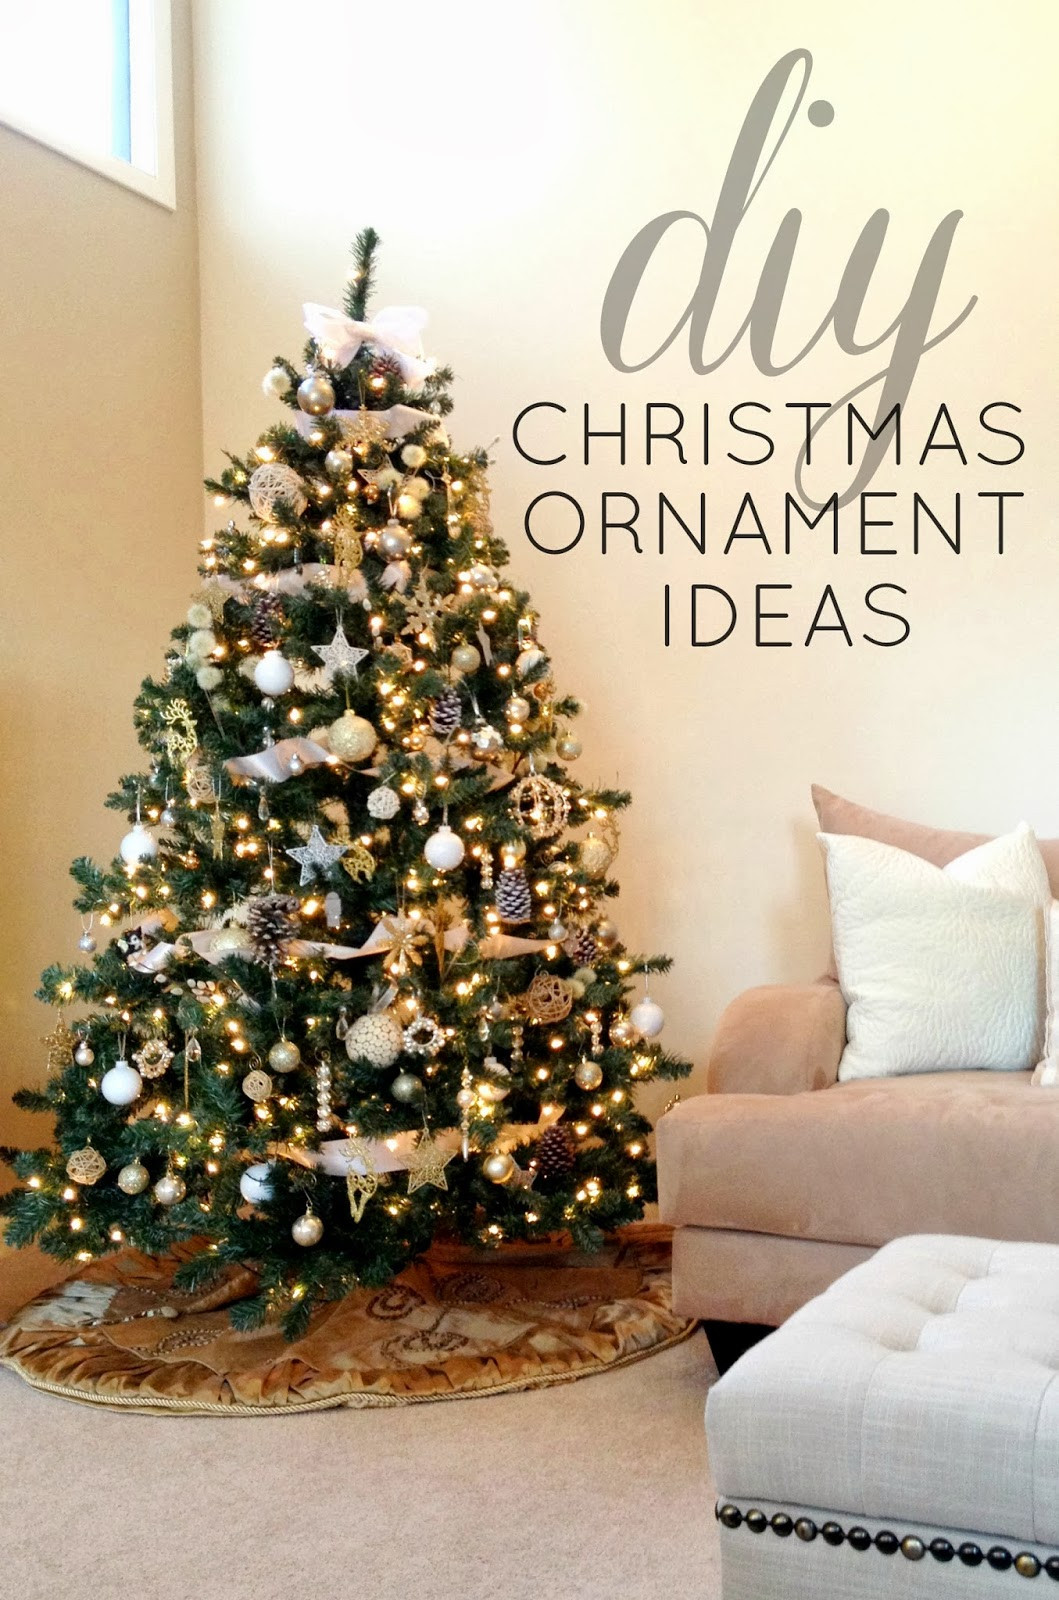 Christmas Tree Decorations Best Of Christmas Tree Decorations Ideas and Tips to Decorate It Of Superb 49 Pics Christmas Tree Decorations